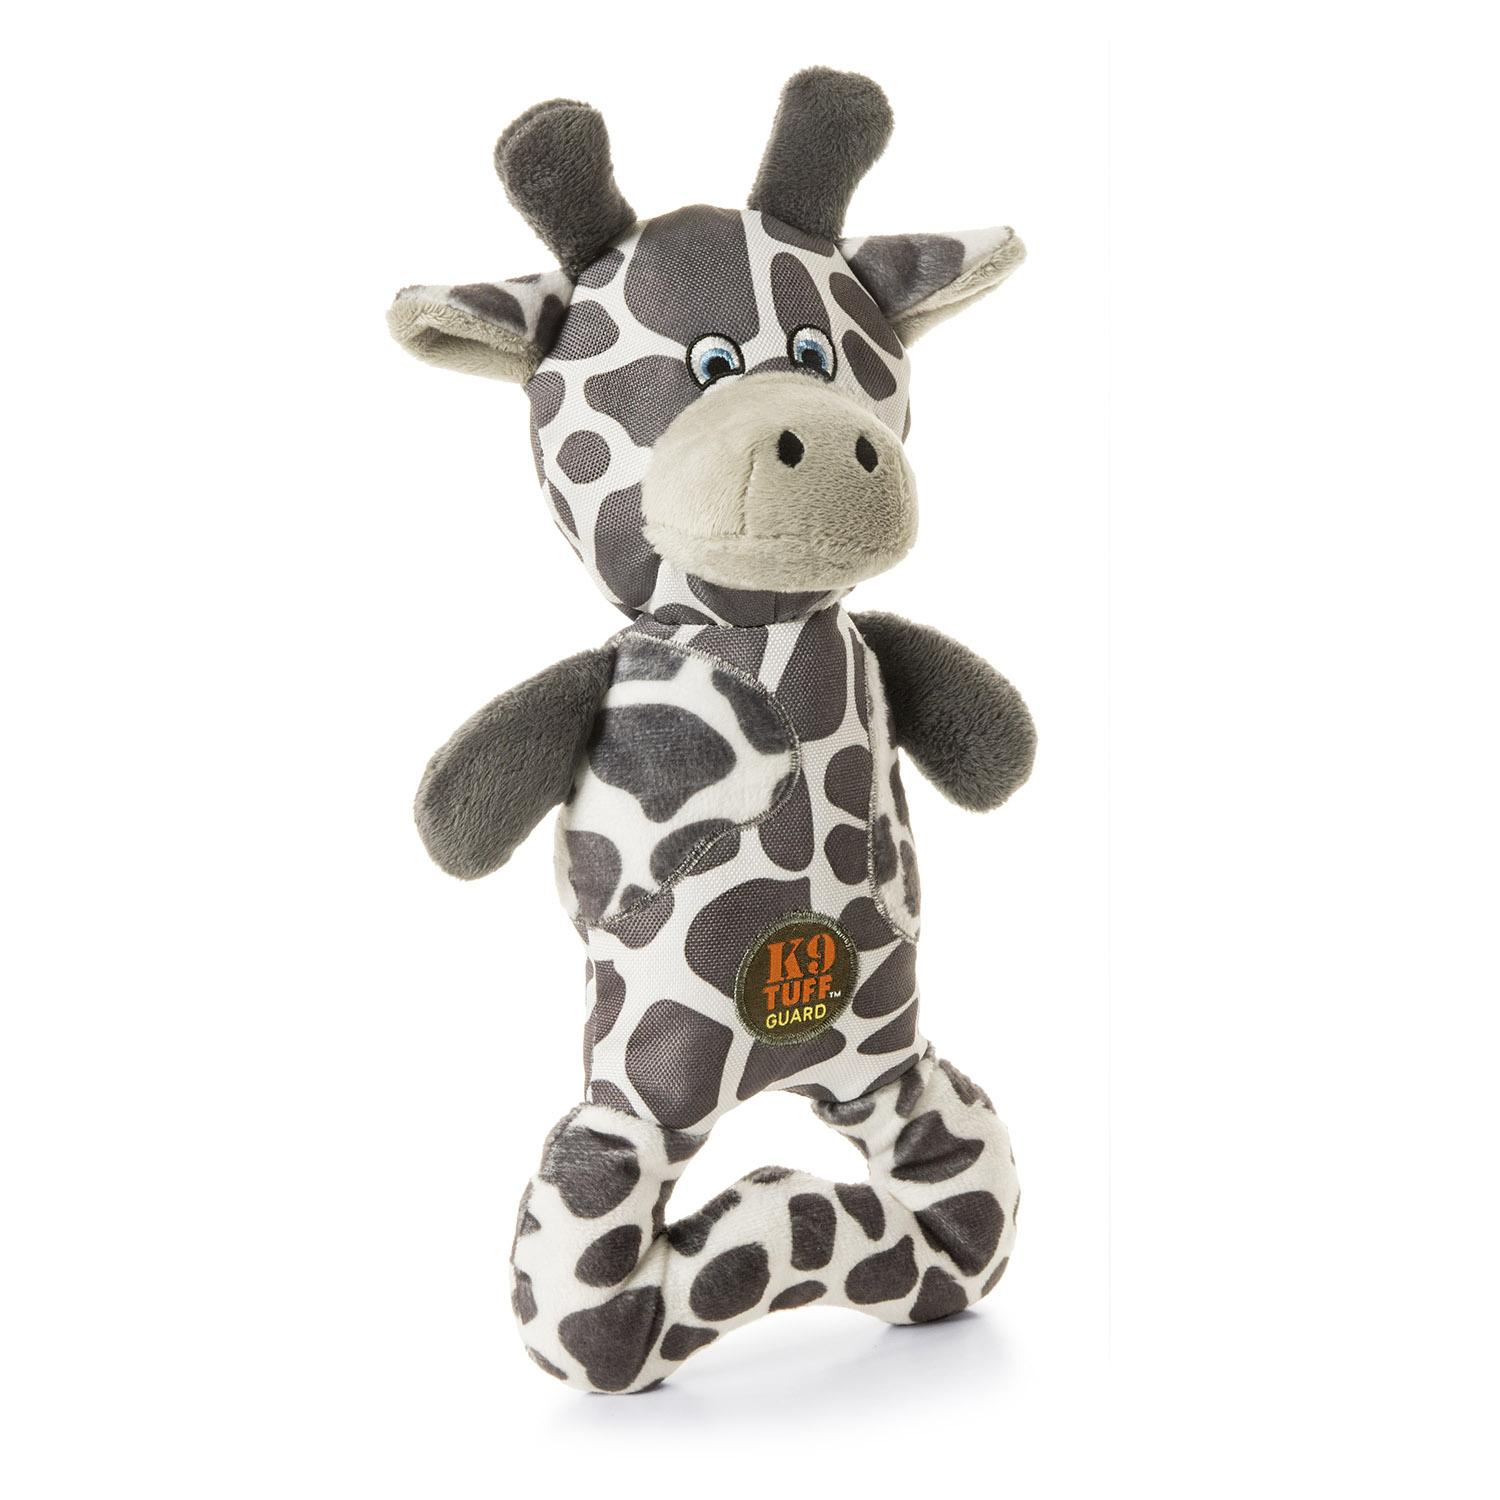 Charming Pattern Patches Durable Dog Toy Gr Baxterboo